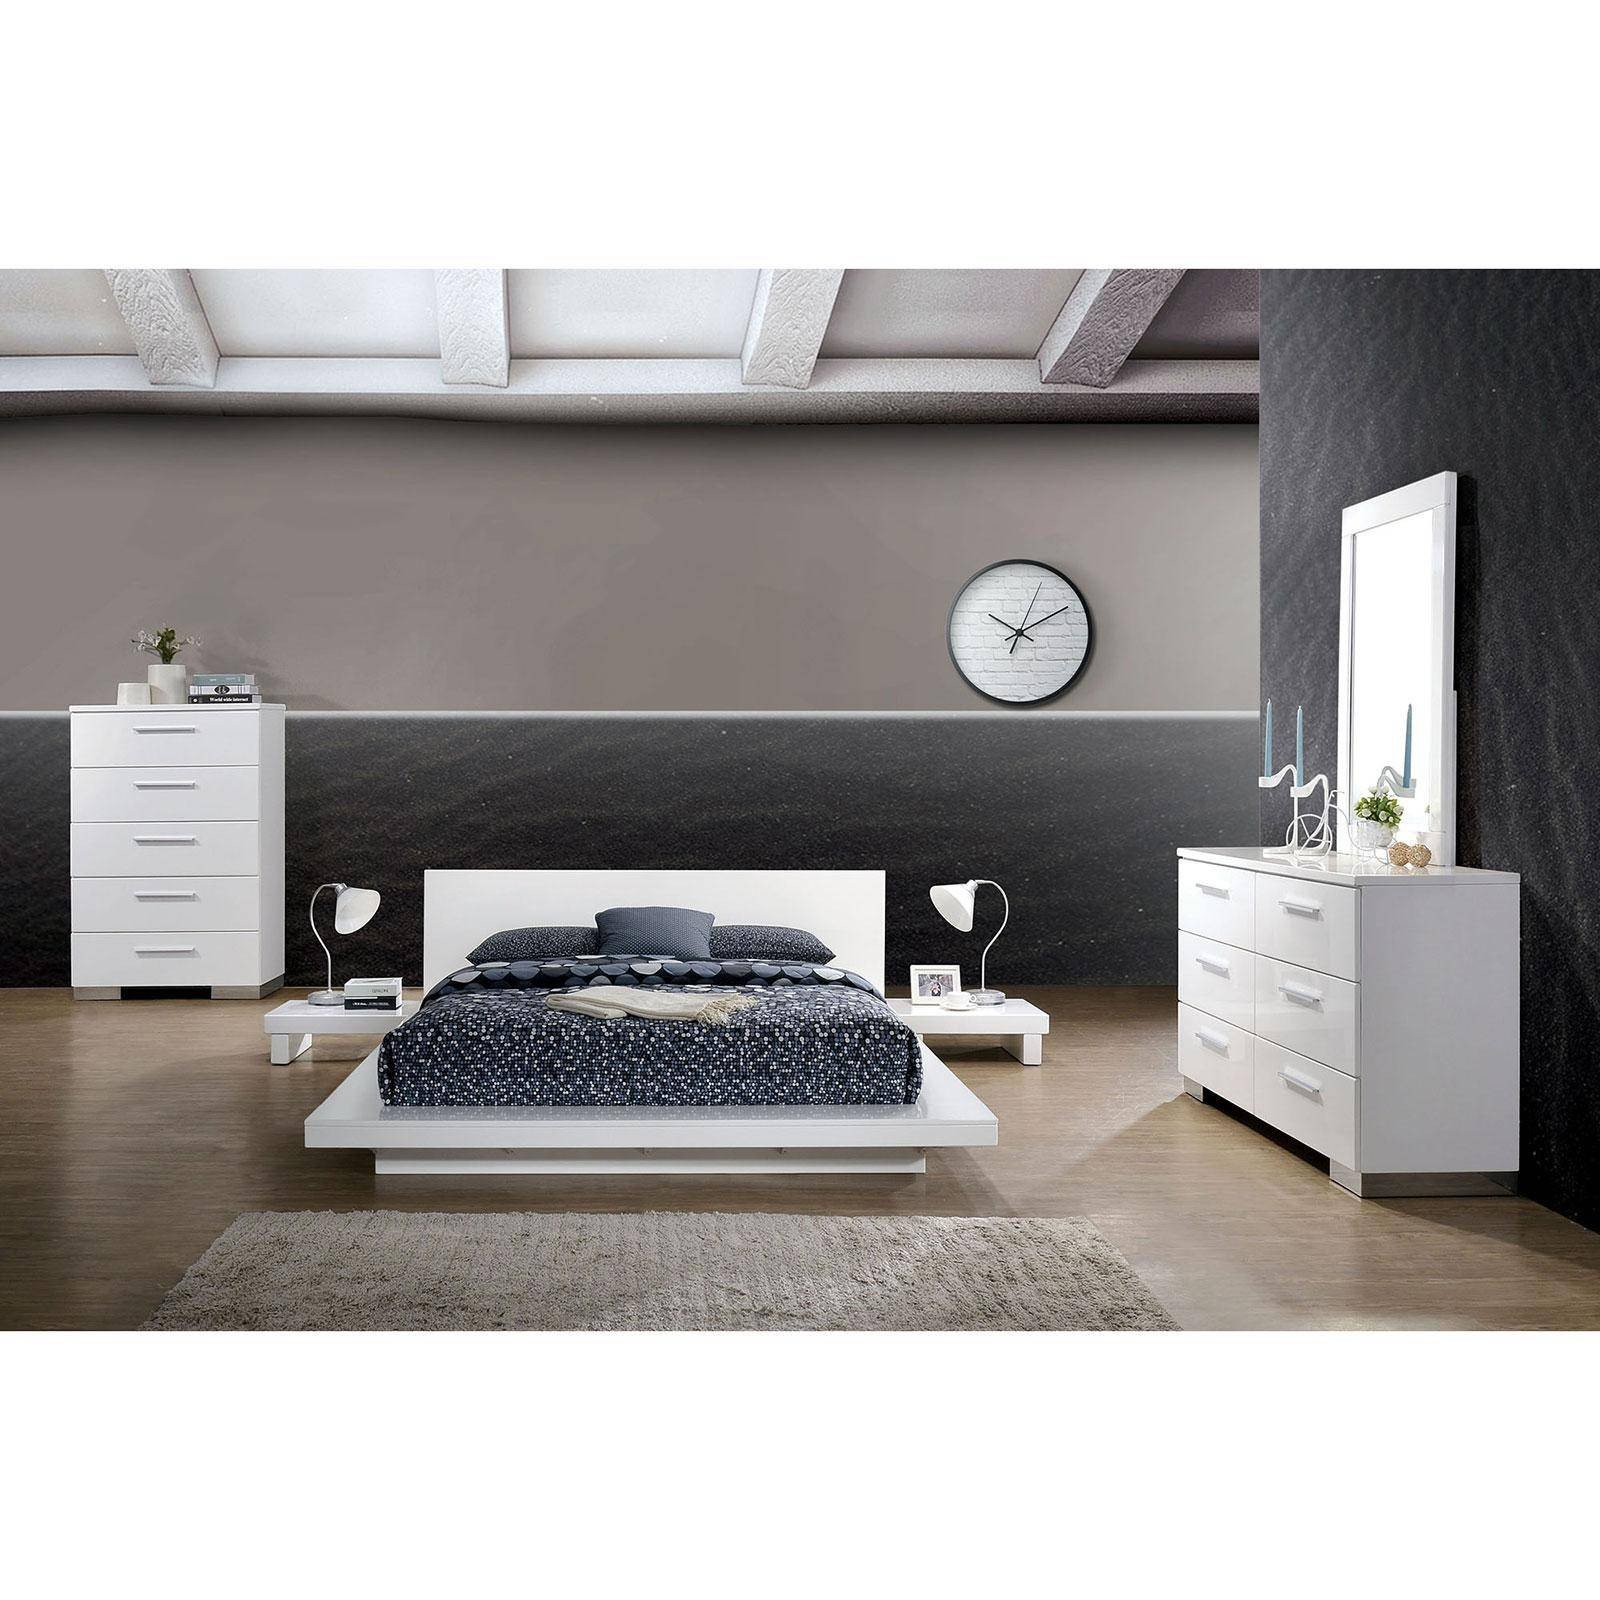 Low Profile Bedroom Set Inspirational Contemporary Wood California King Platform Bed In White Christie by Foa Group